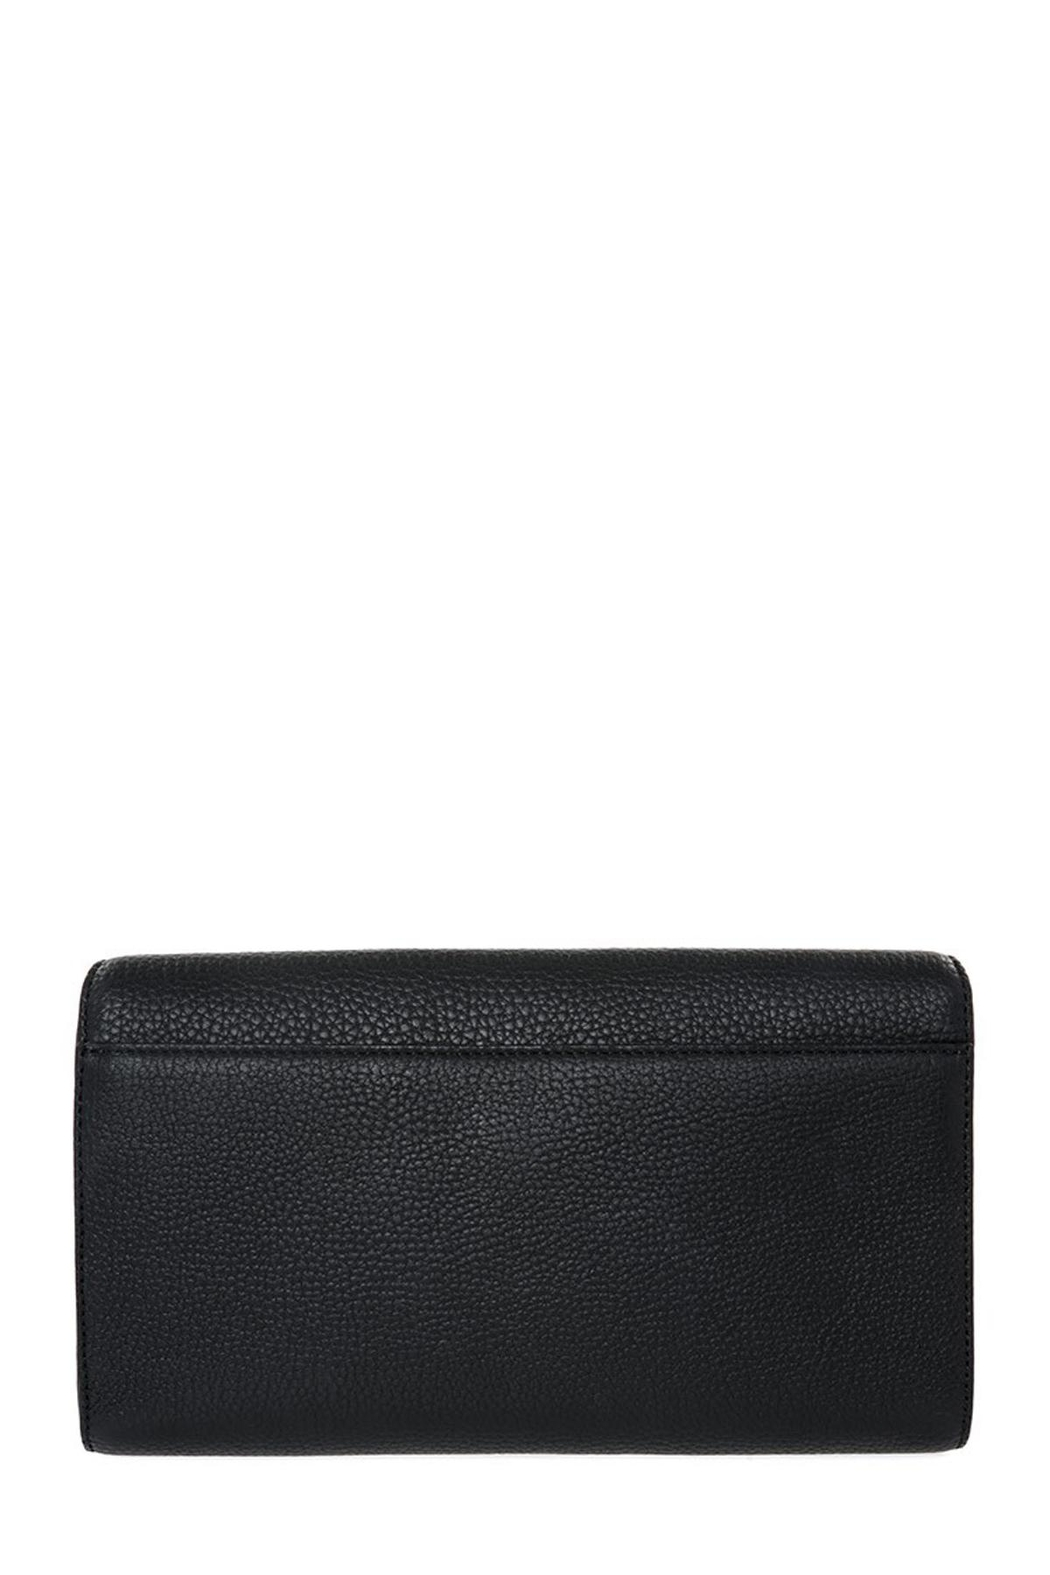 Mackage Flex Leather Clutch - Back Cropped Image